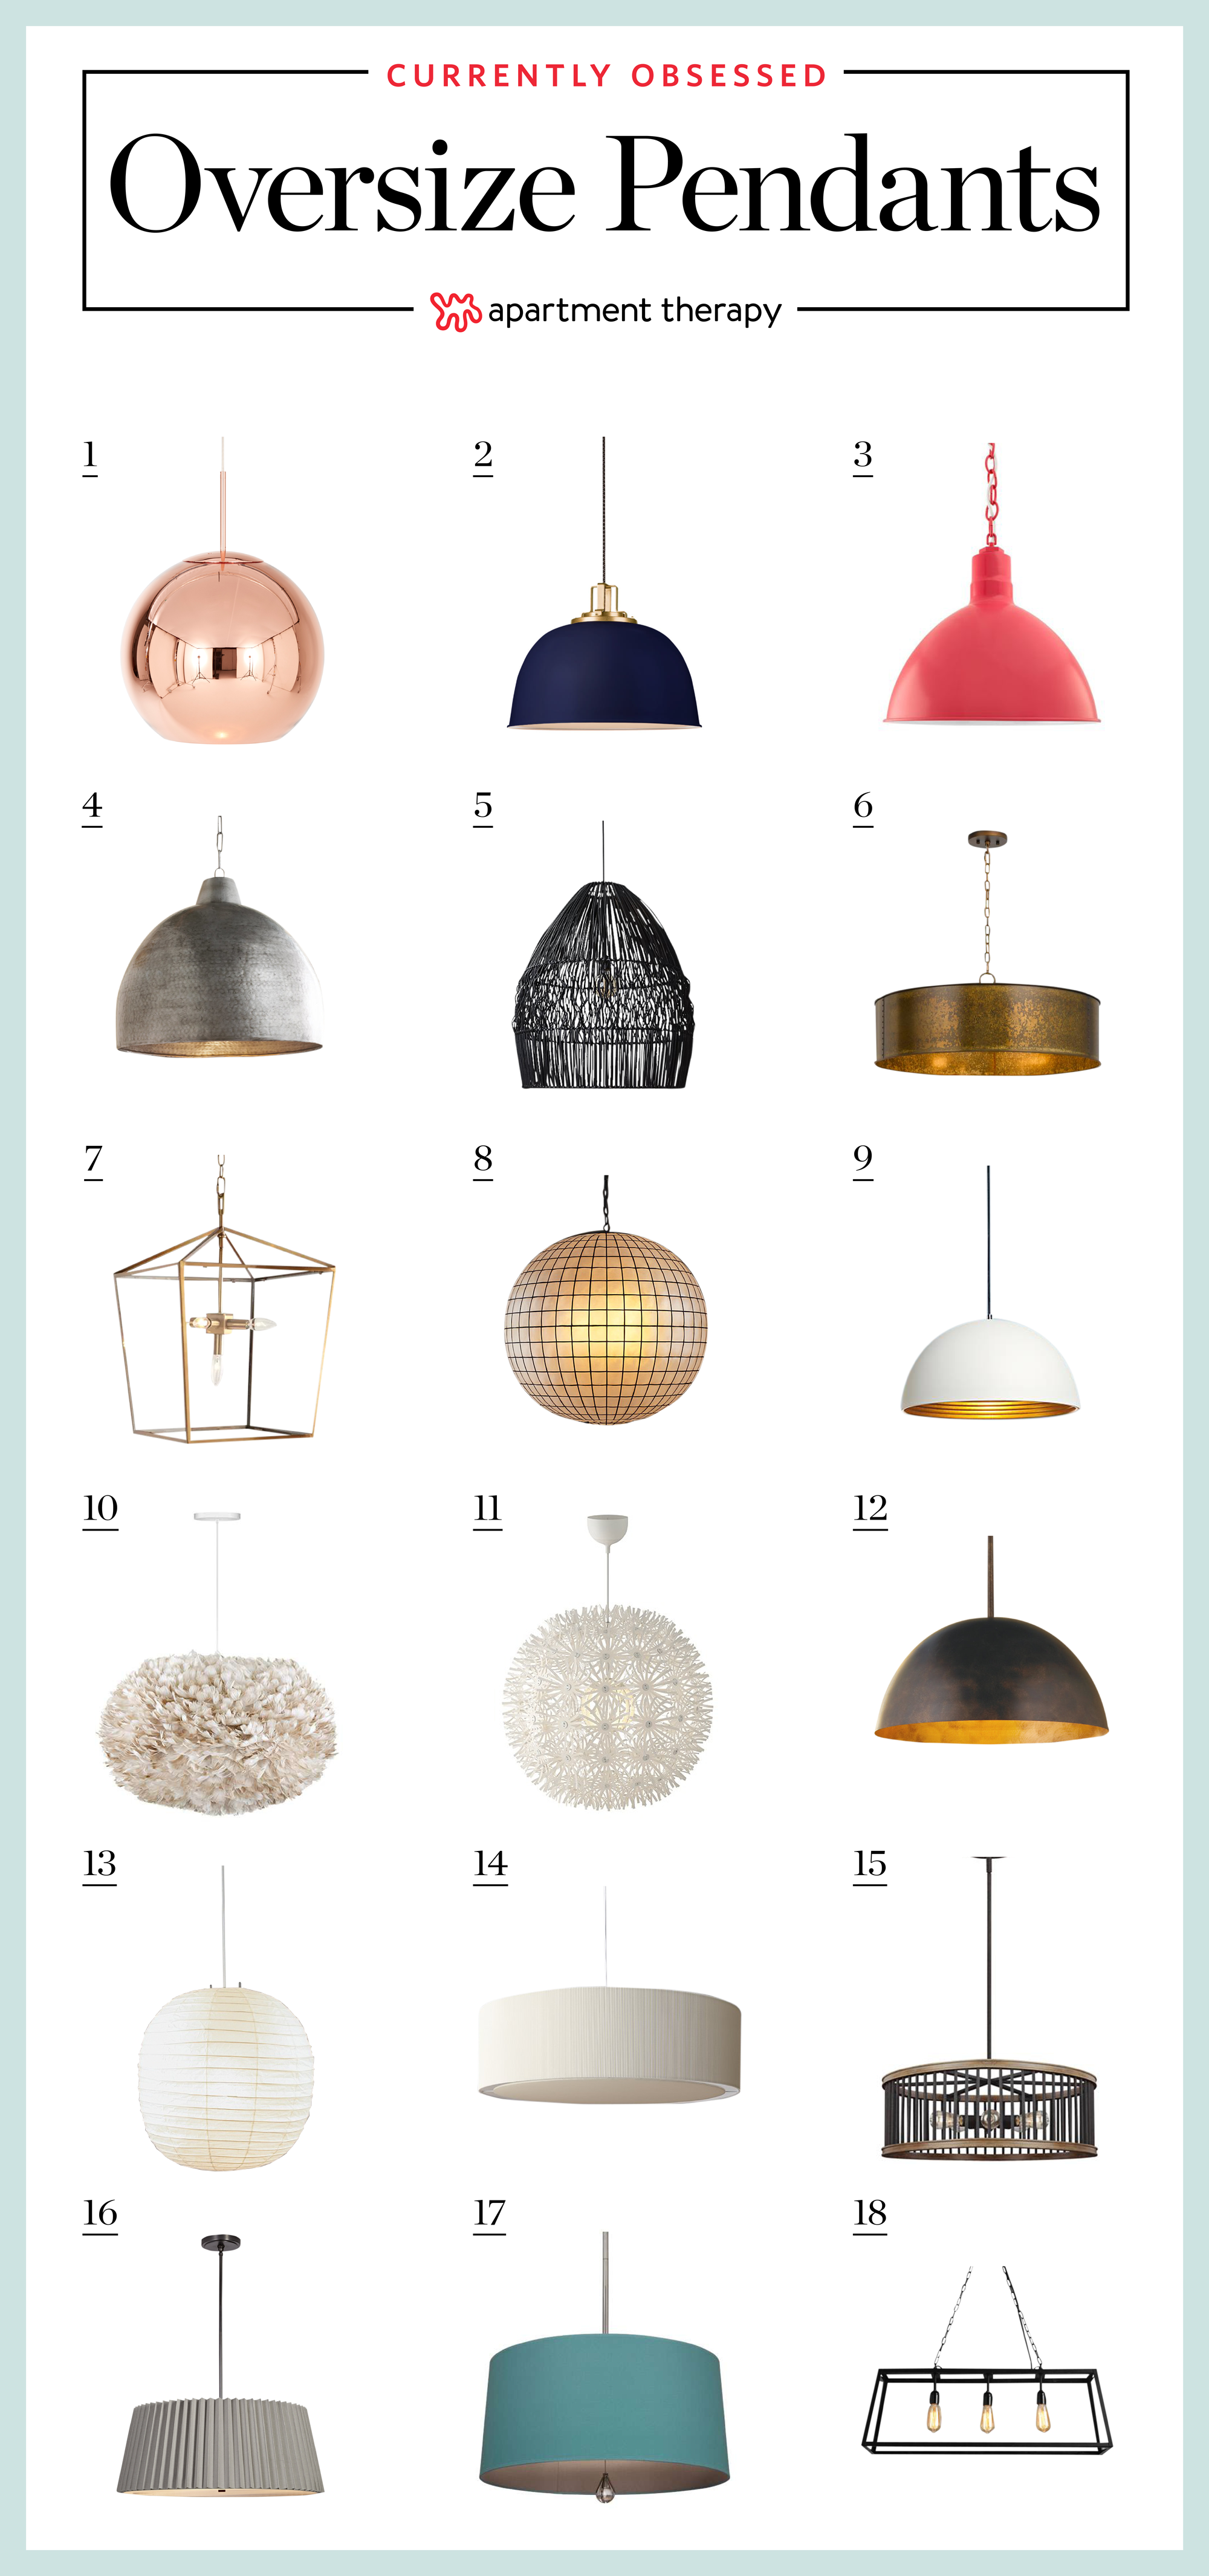 Rooms With Oversize Pendant Lighting Where To Buy Them Apartment Therapy